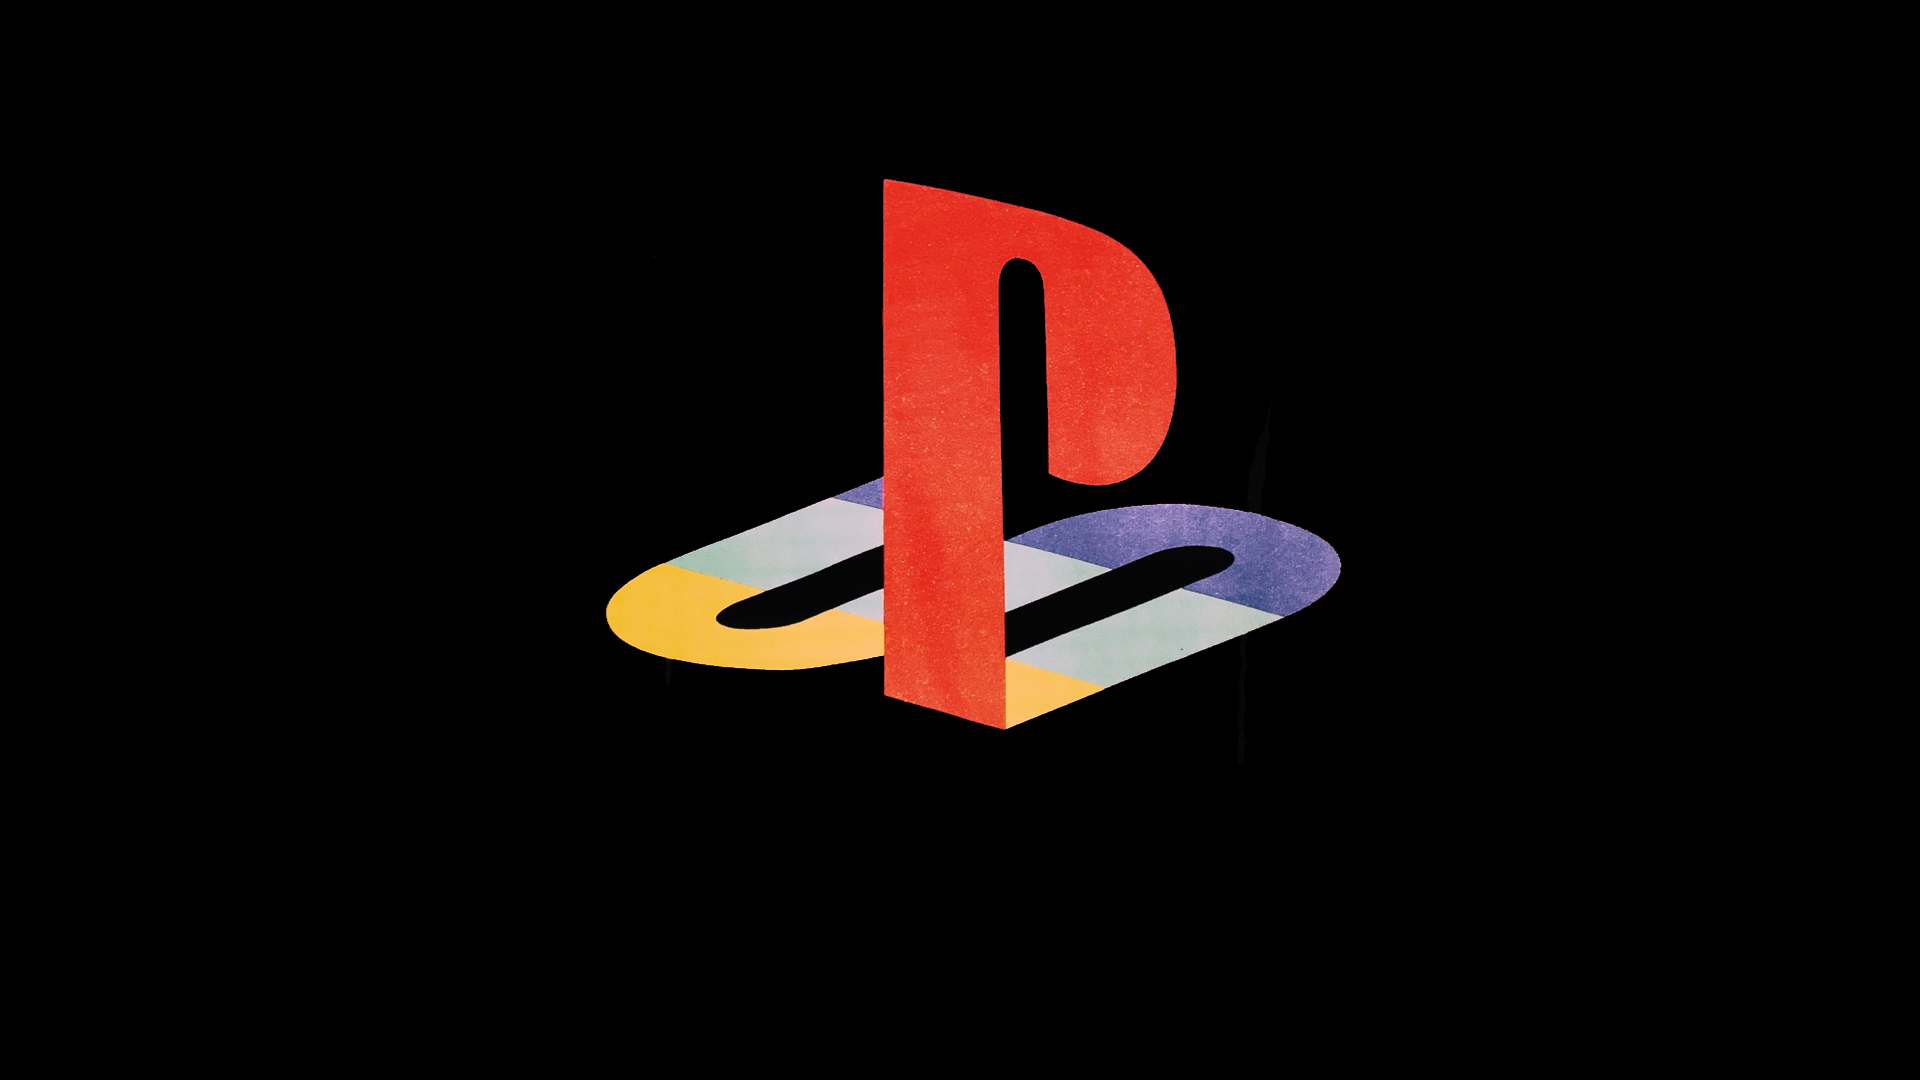 Playstation Logo HD 4k Wallpapers Images Backgrounds